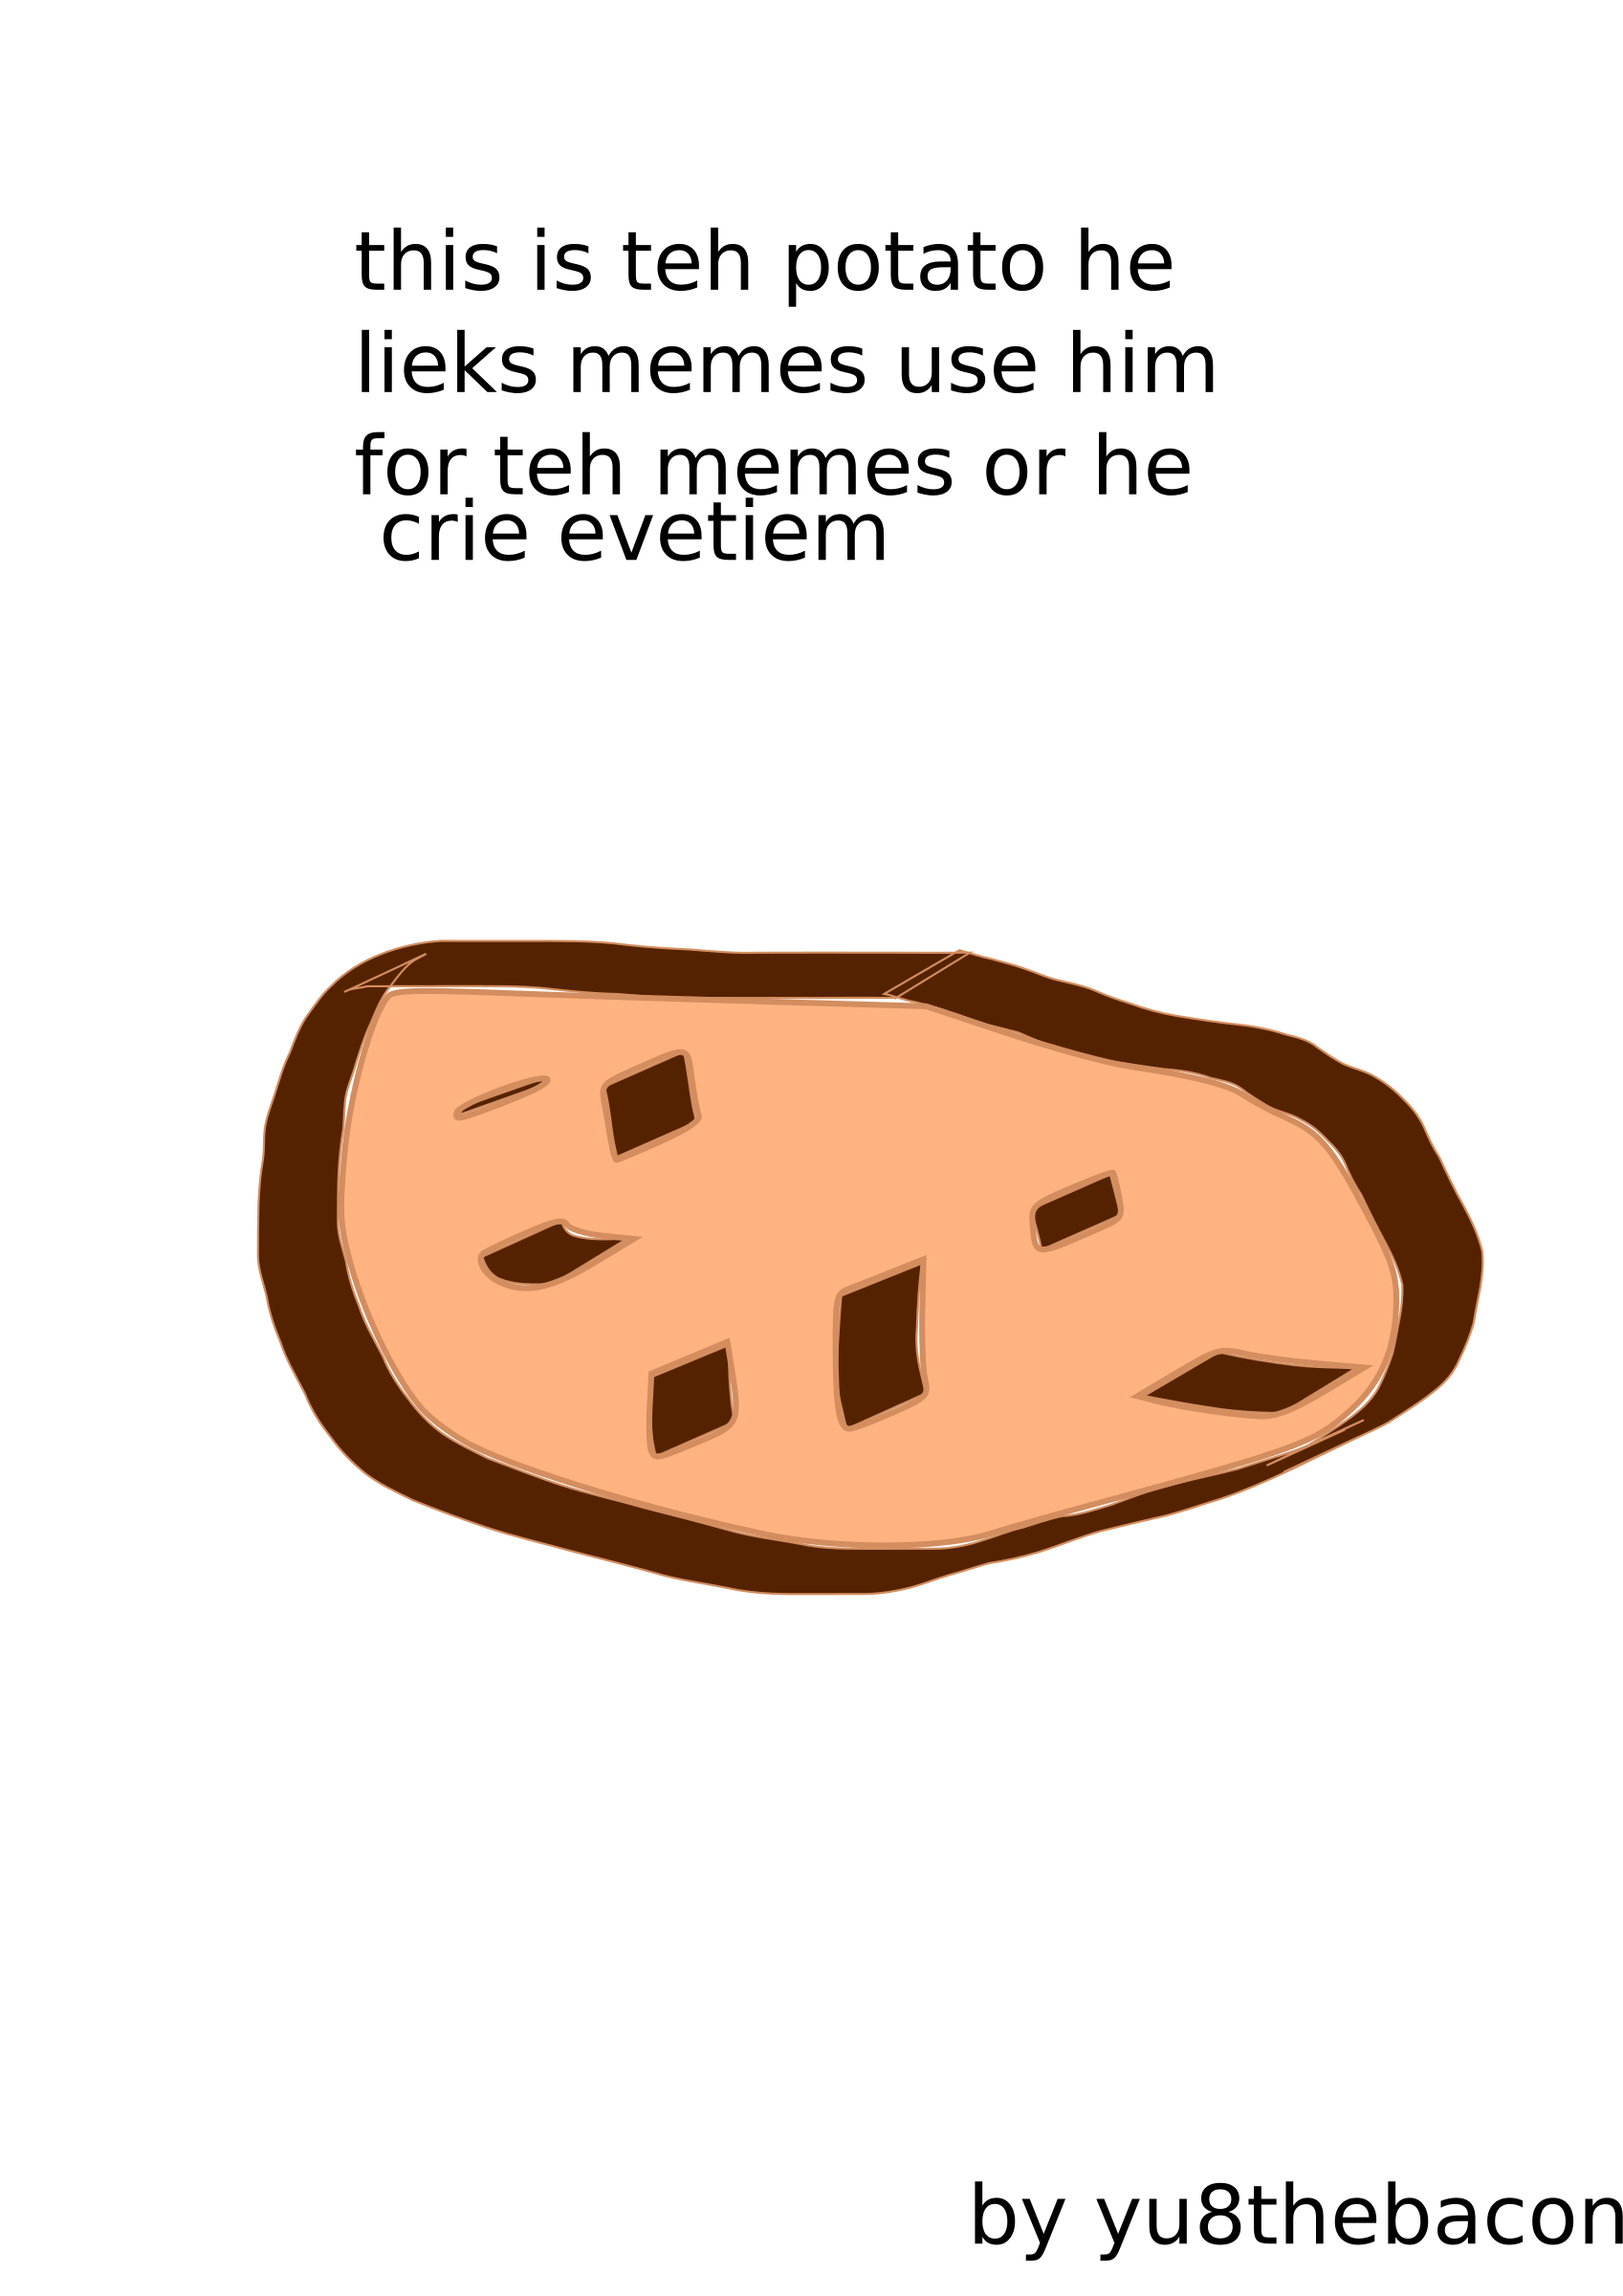 teh meme potato by Yu8thebacon